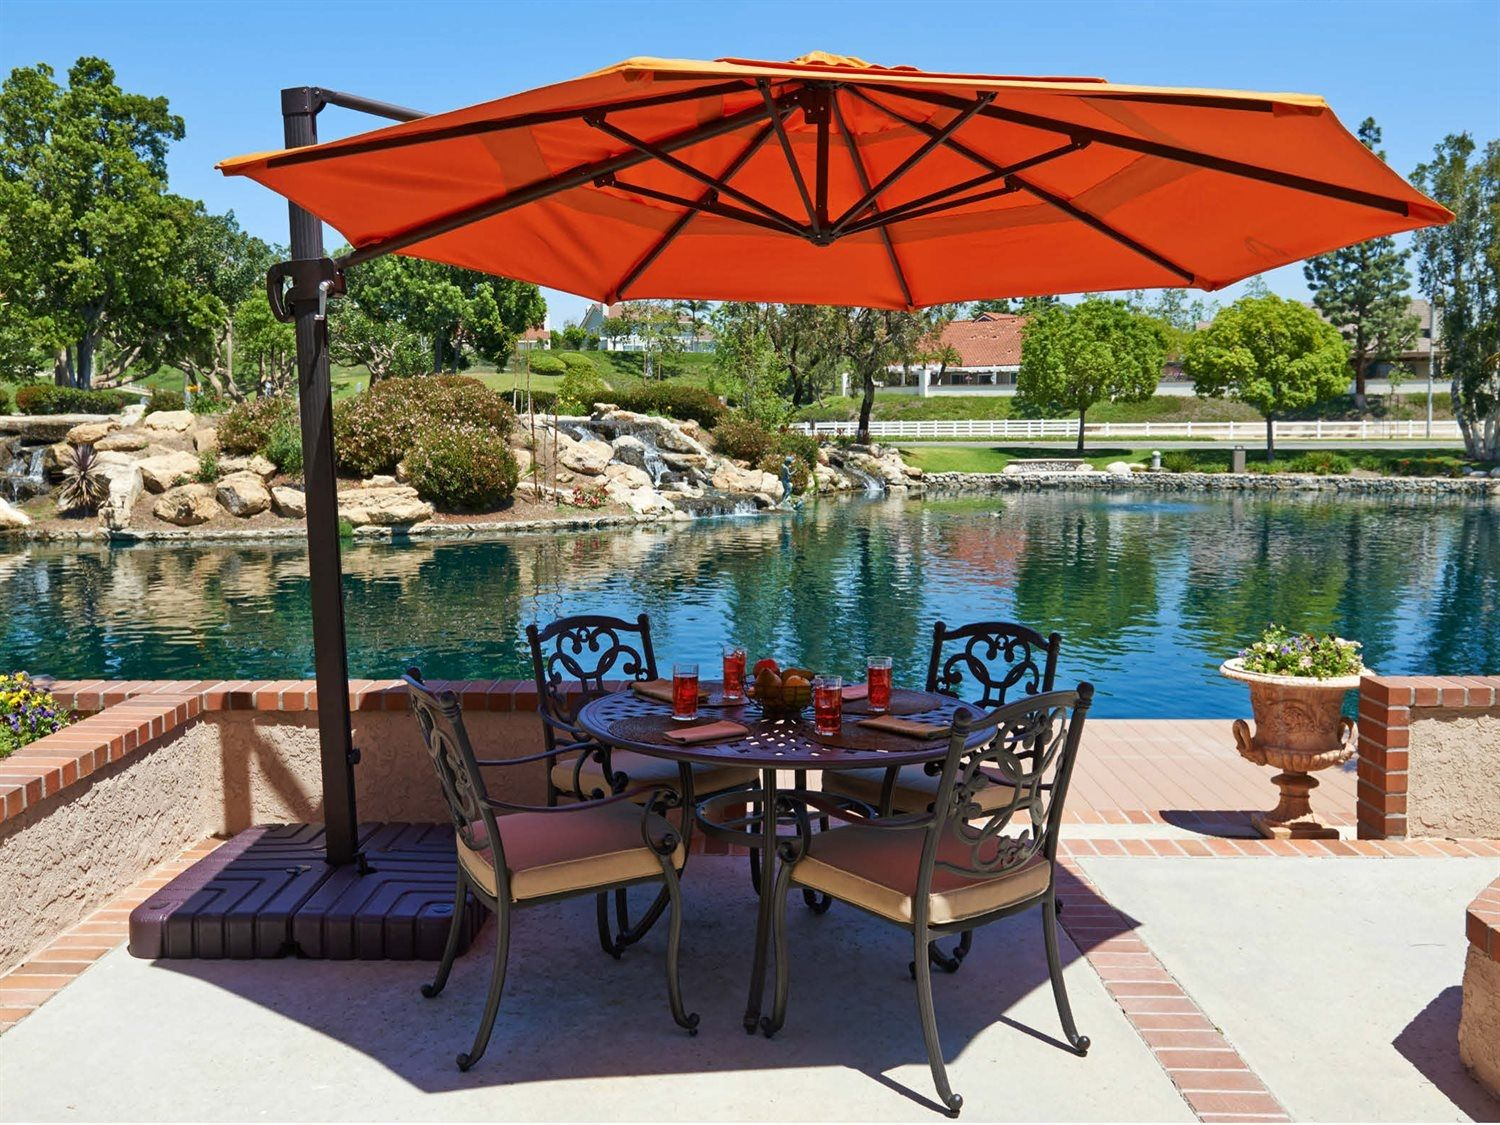 12 Foot Patio Umbrella